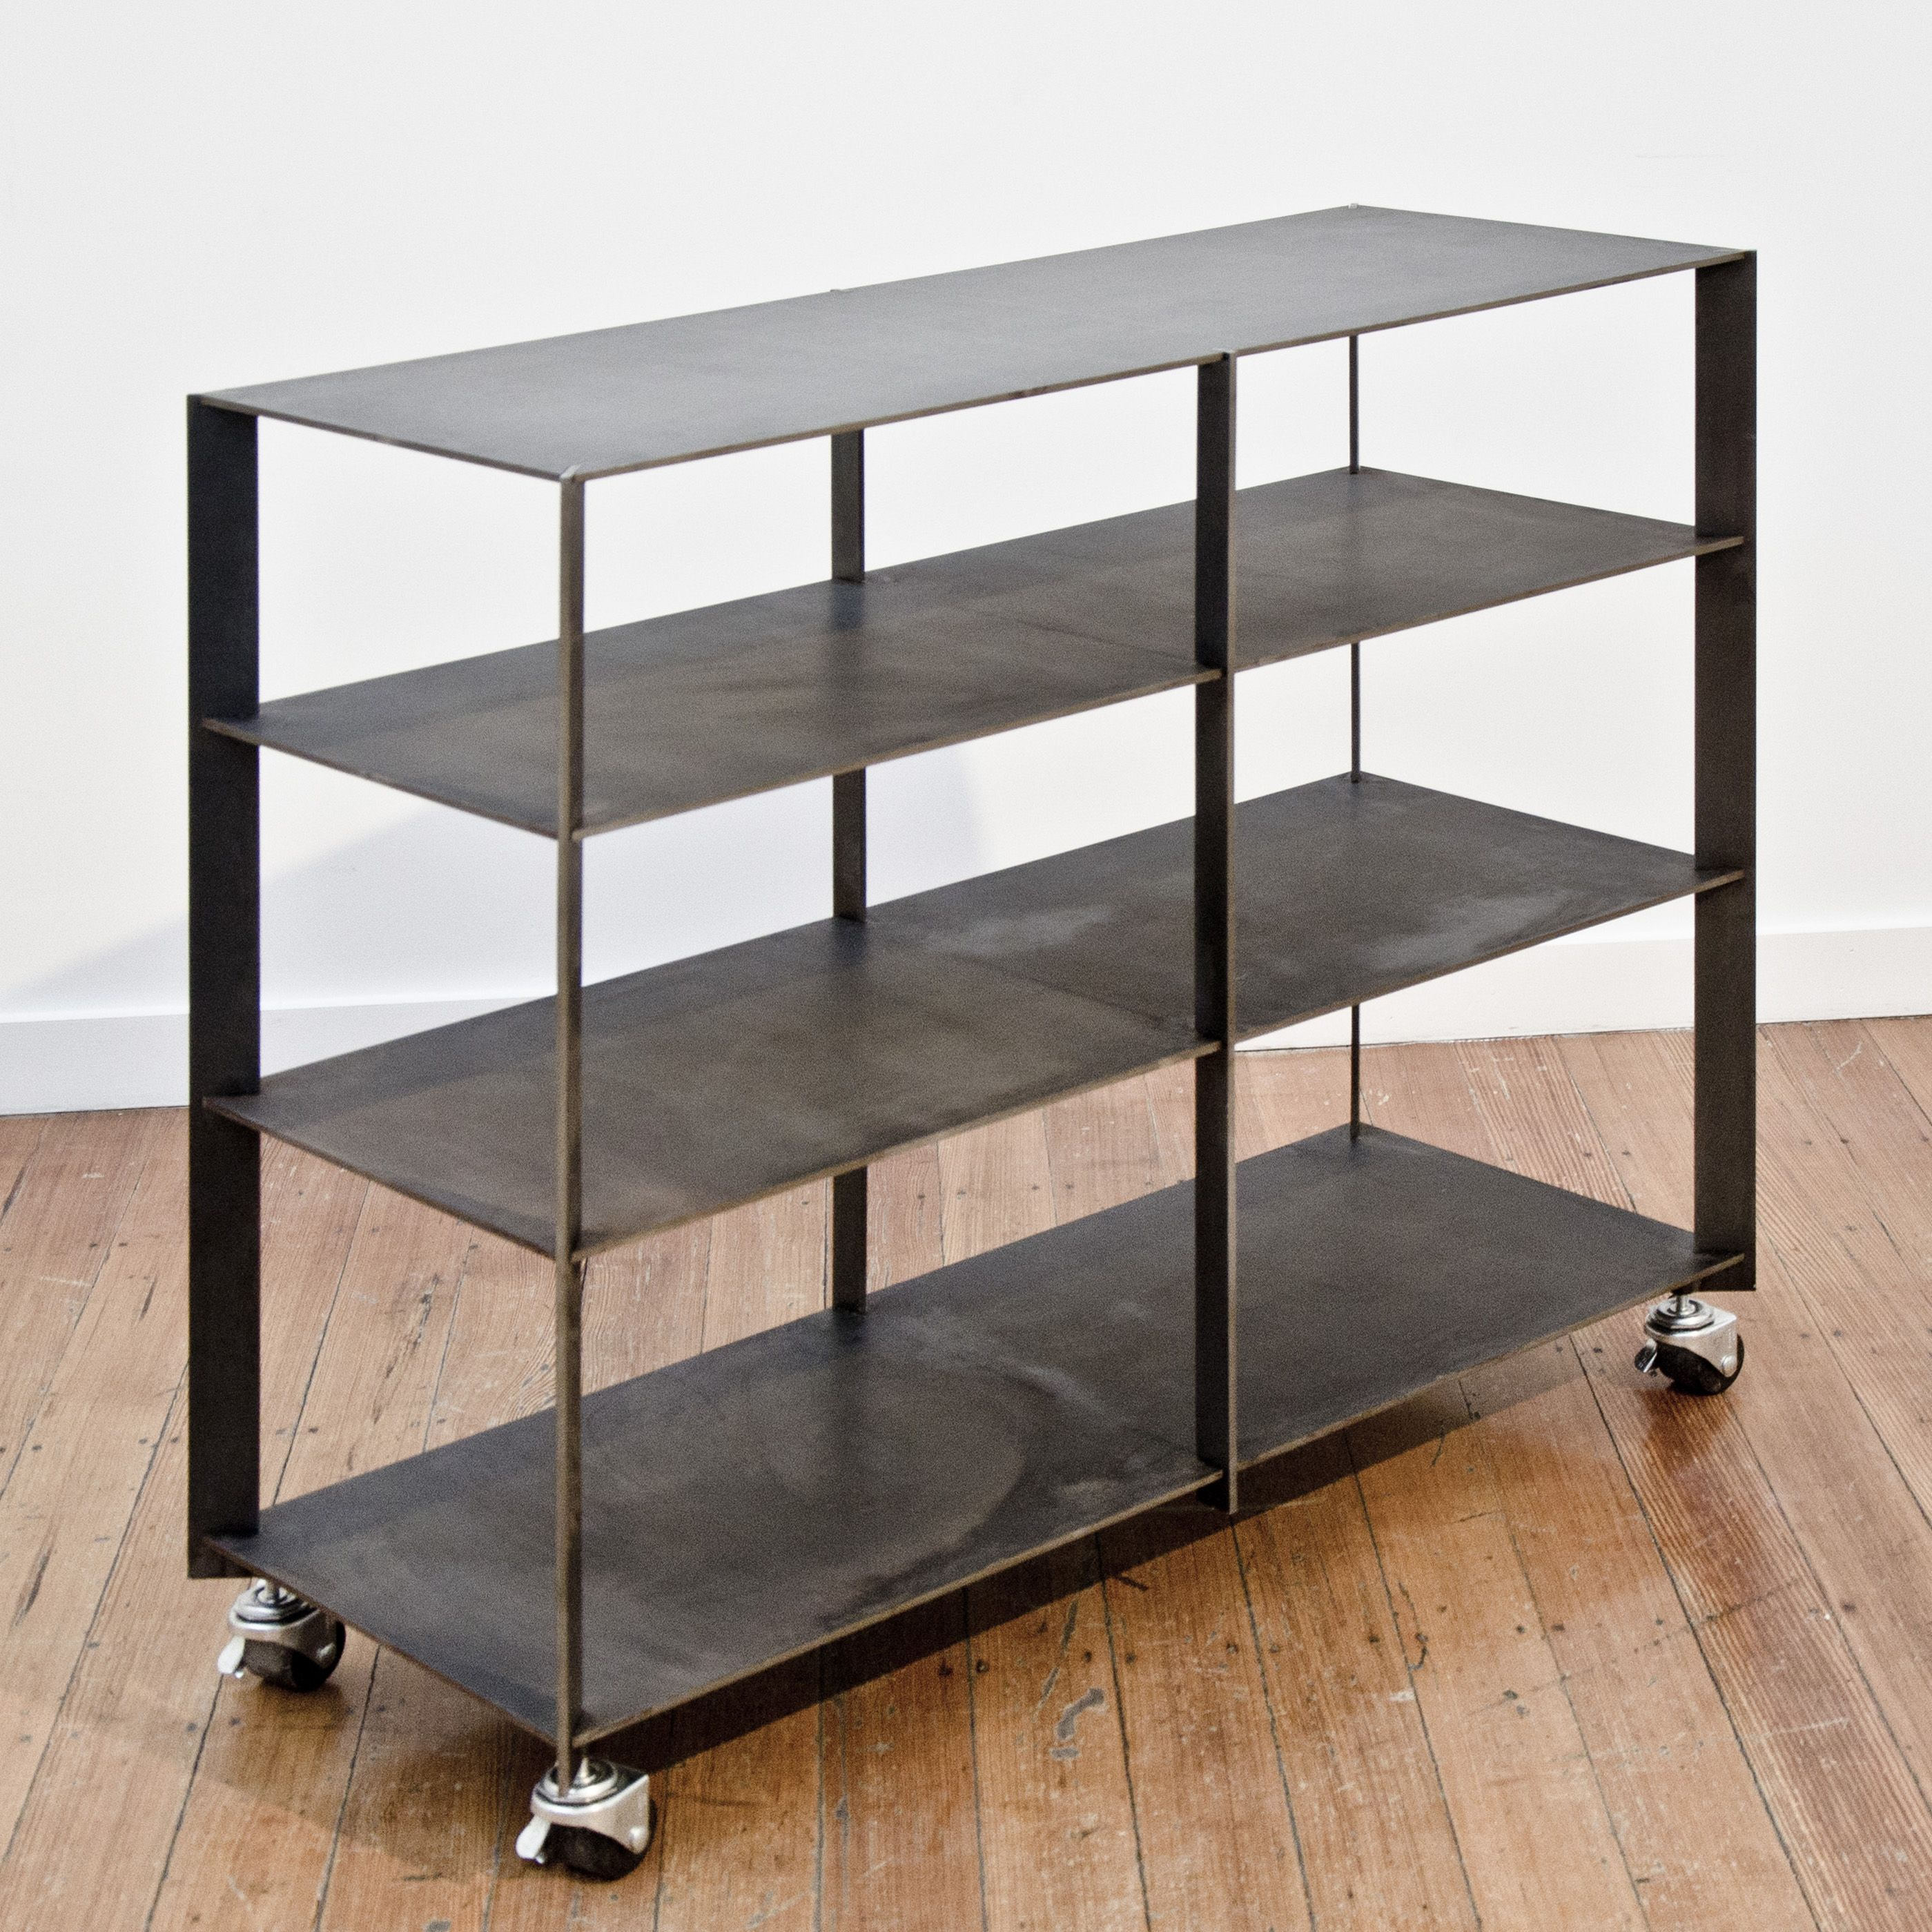 custom made blackened steel rolling shelving carts by mato. Black Bedroom Furniture Sets. Home Design Ideas